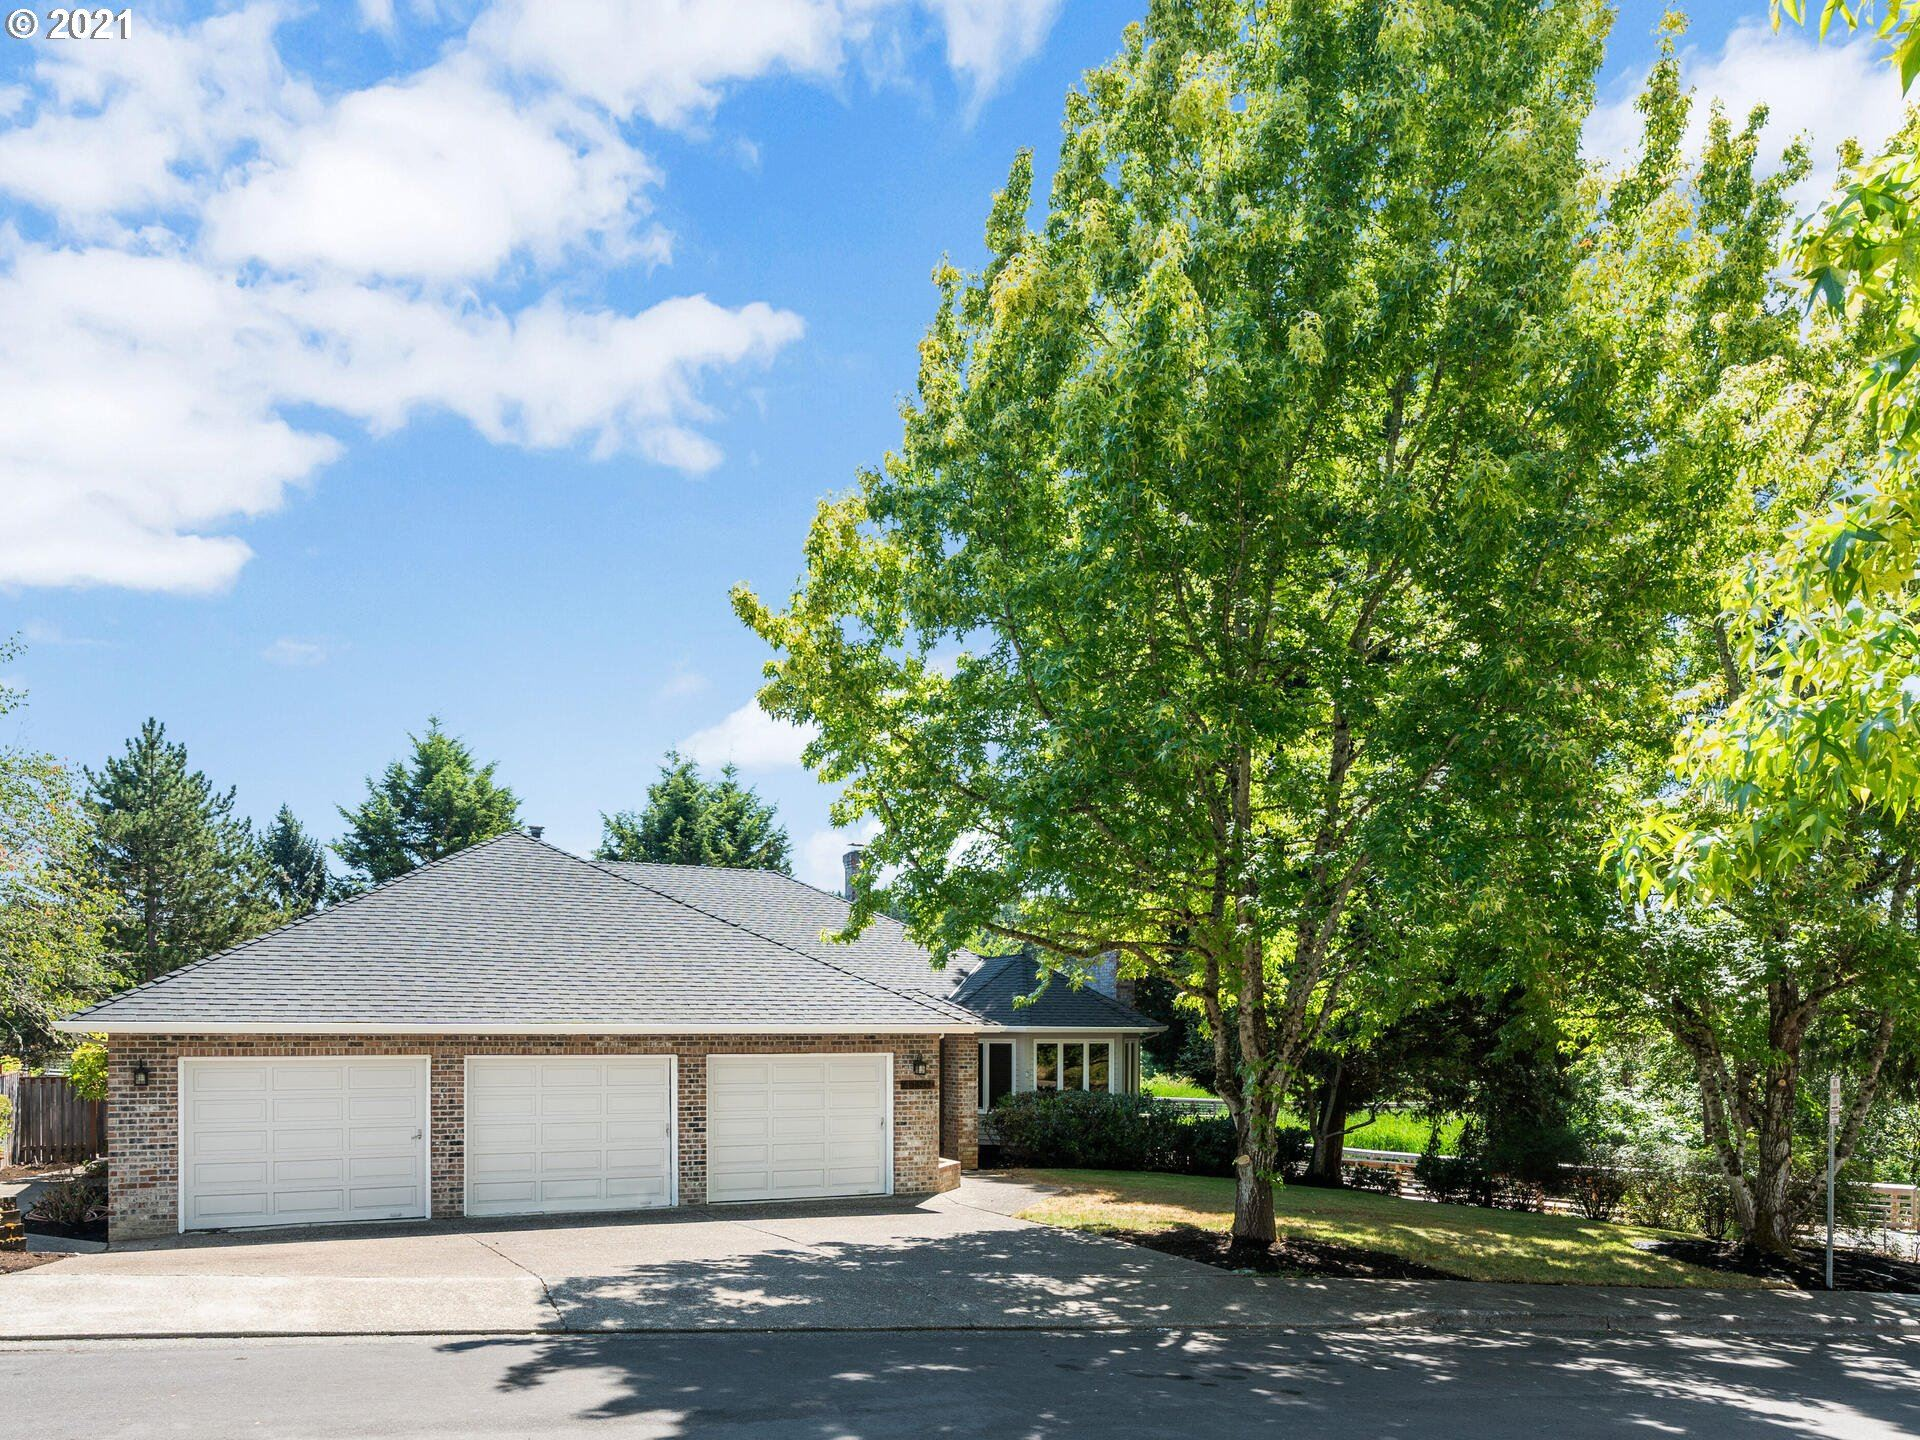 4190 NW 147TH AVE, Portland, OR 97229 - MLS#: 21299053